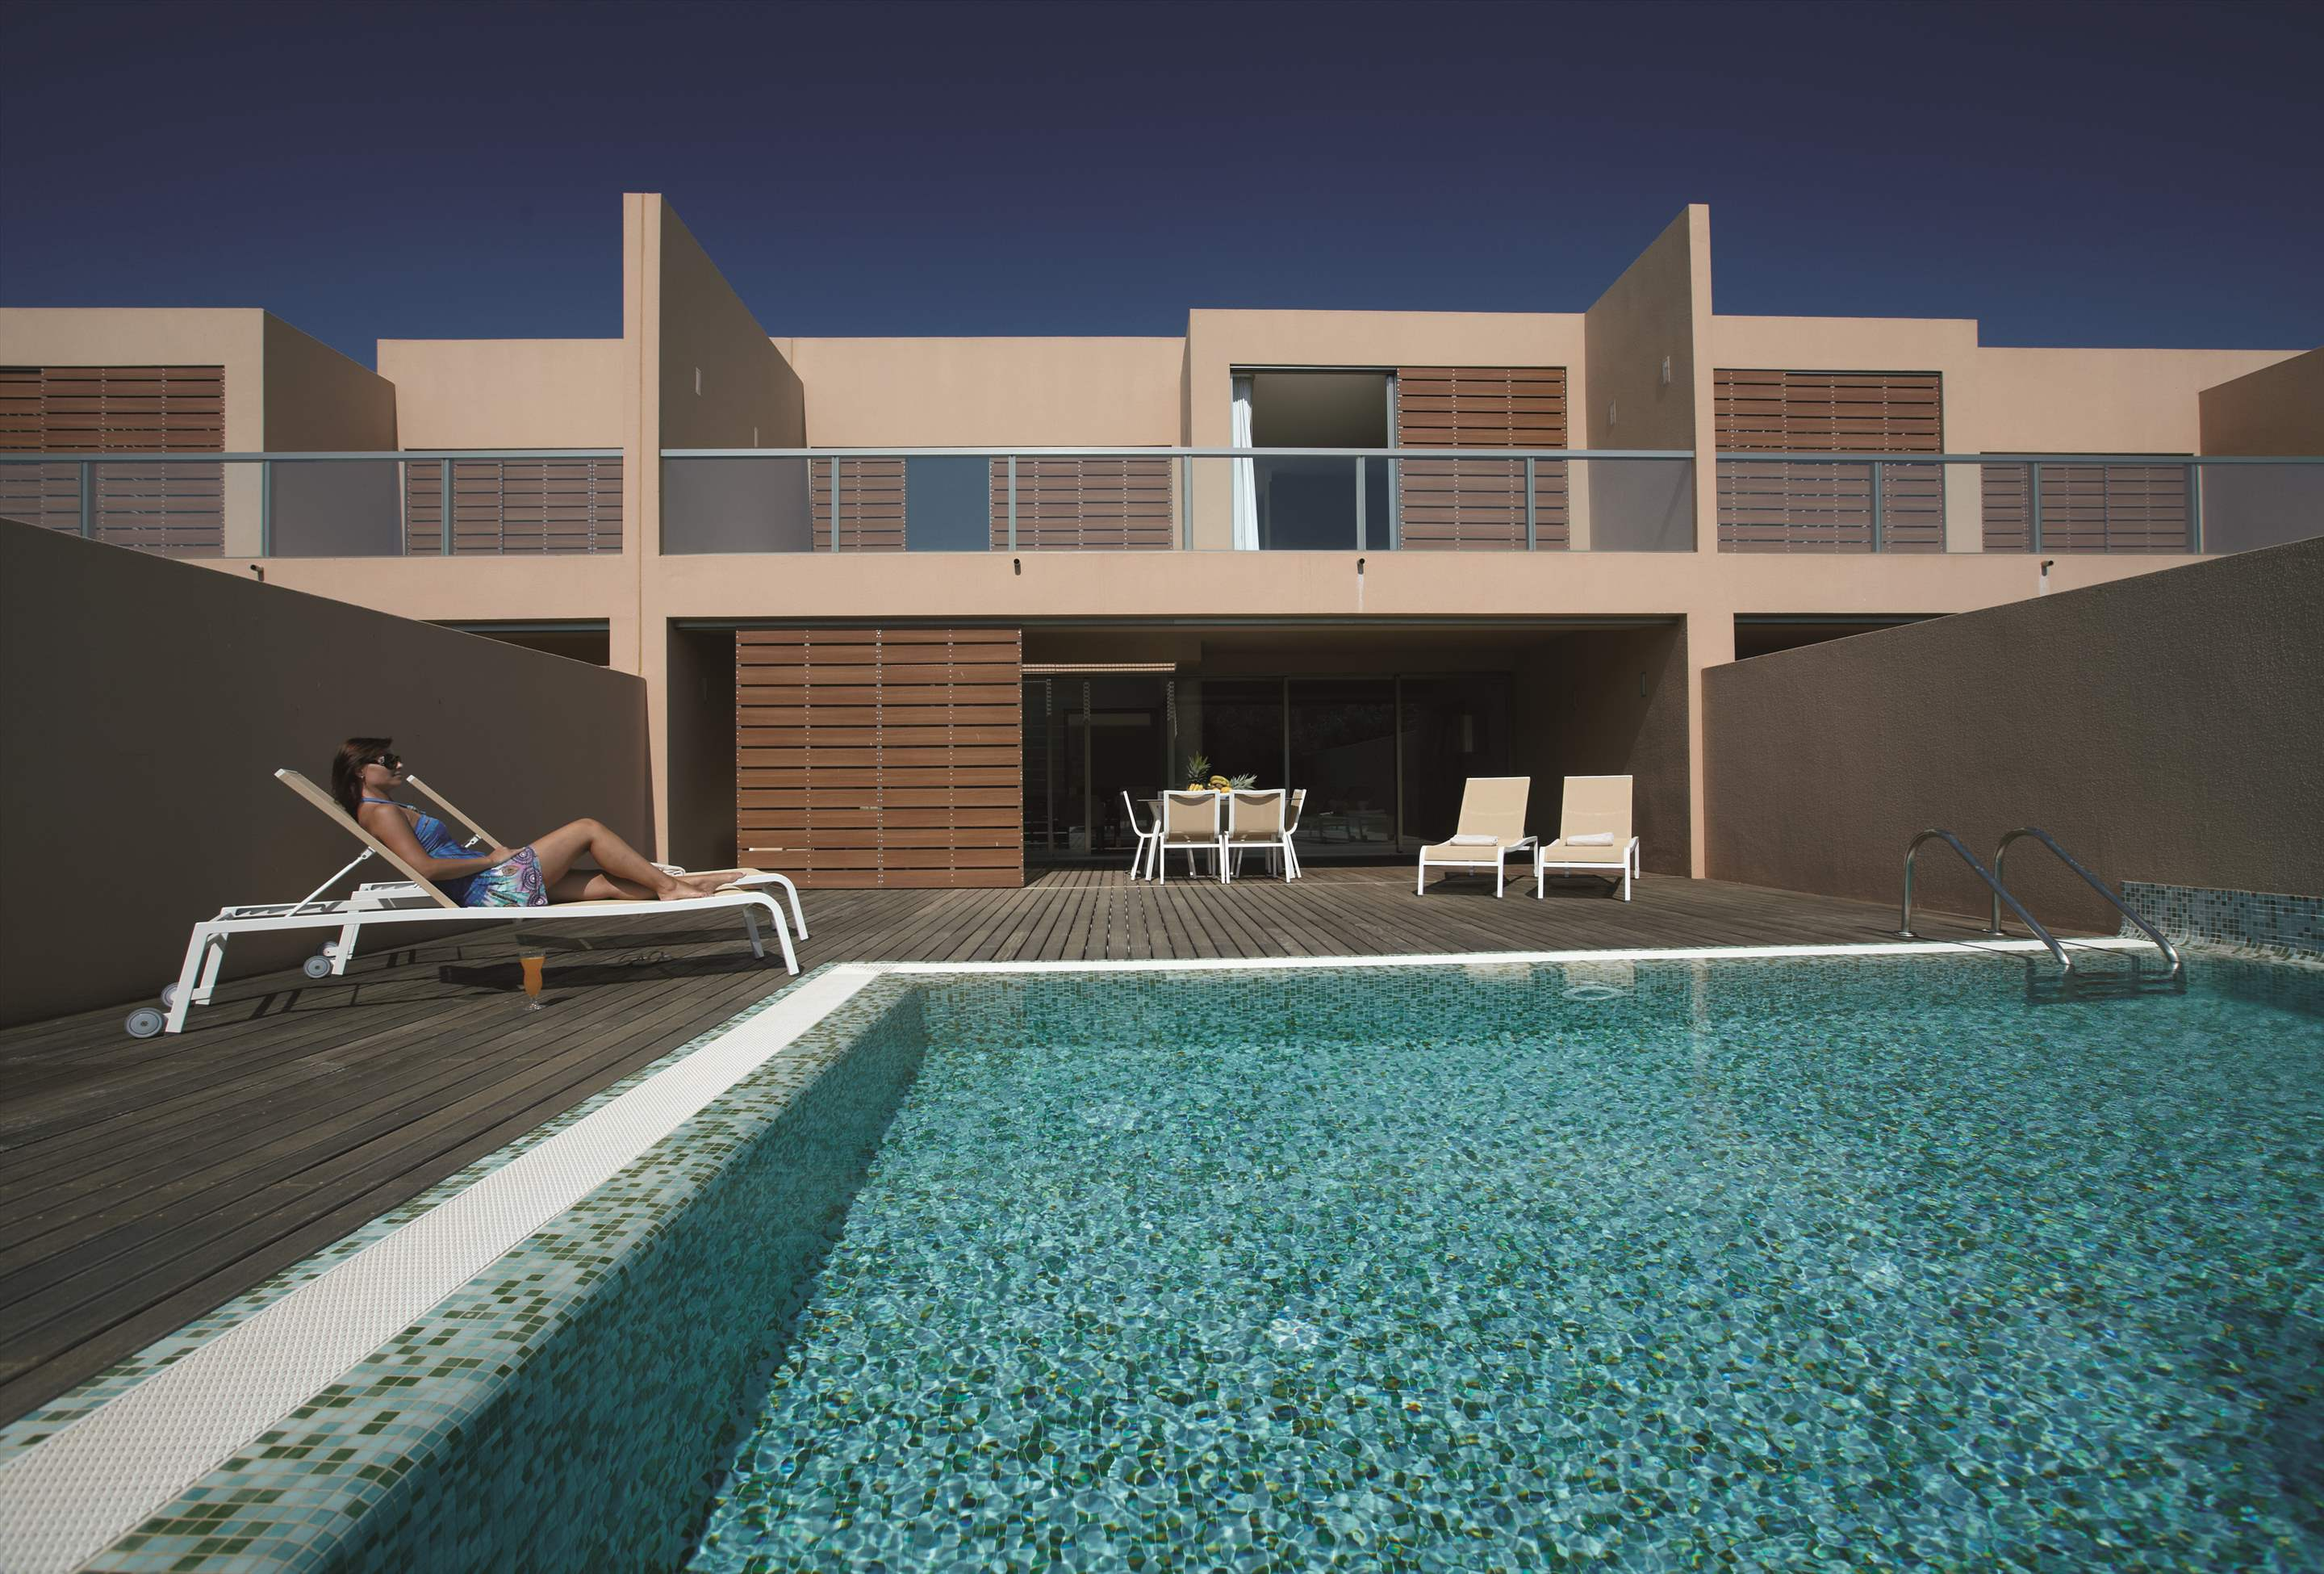 Vidamar Two Bedroom Villa, Self-Catering Basis, 2 bedroom villa in Vidamar Resort, Algarve